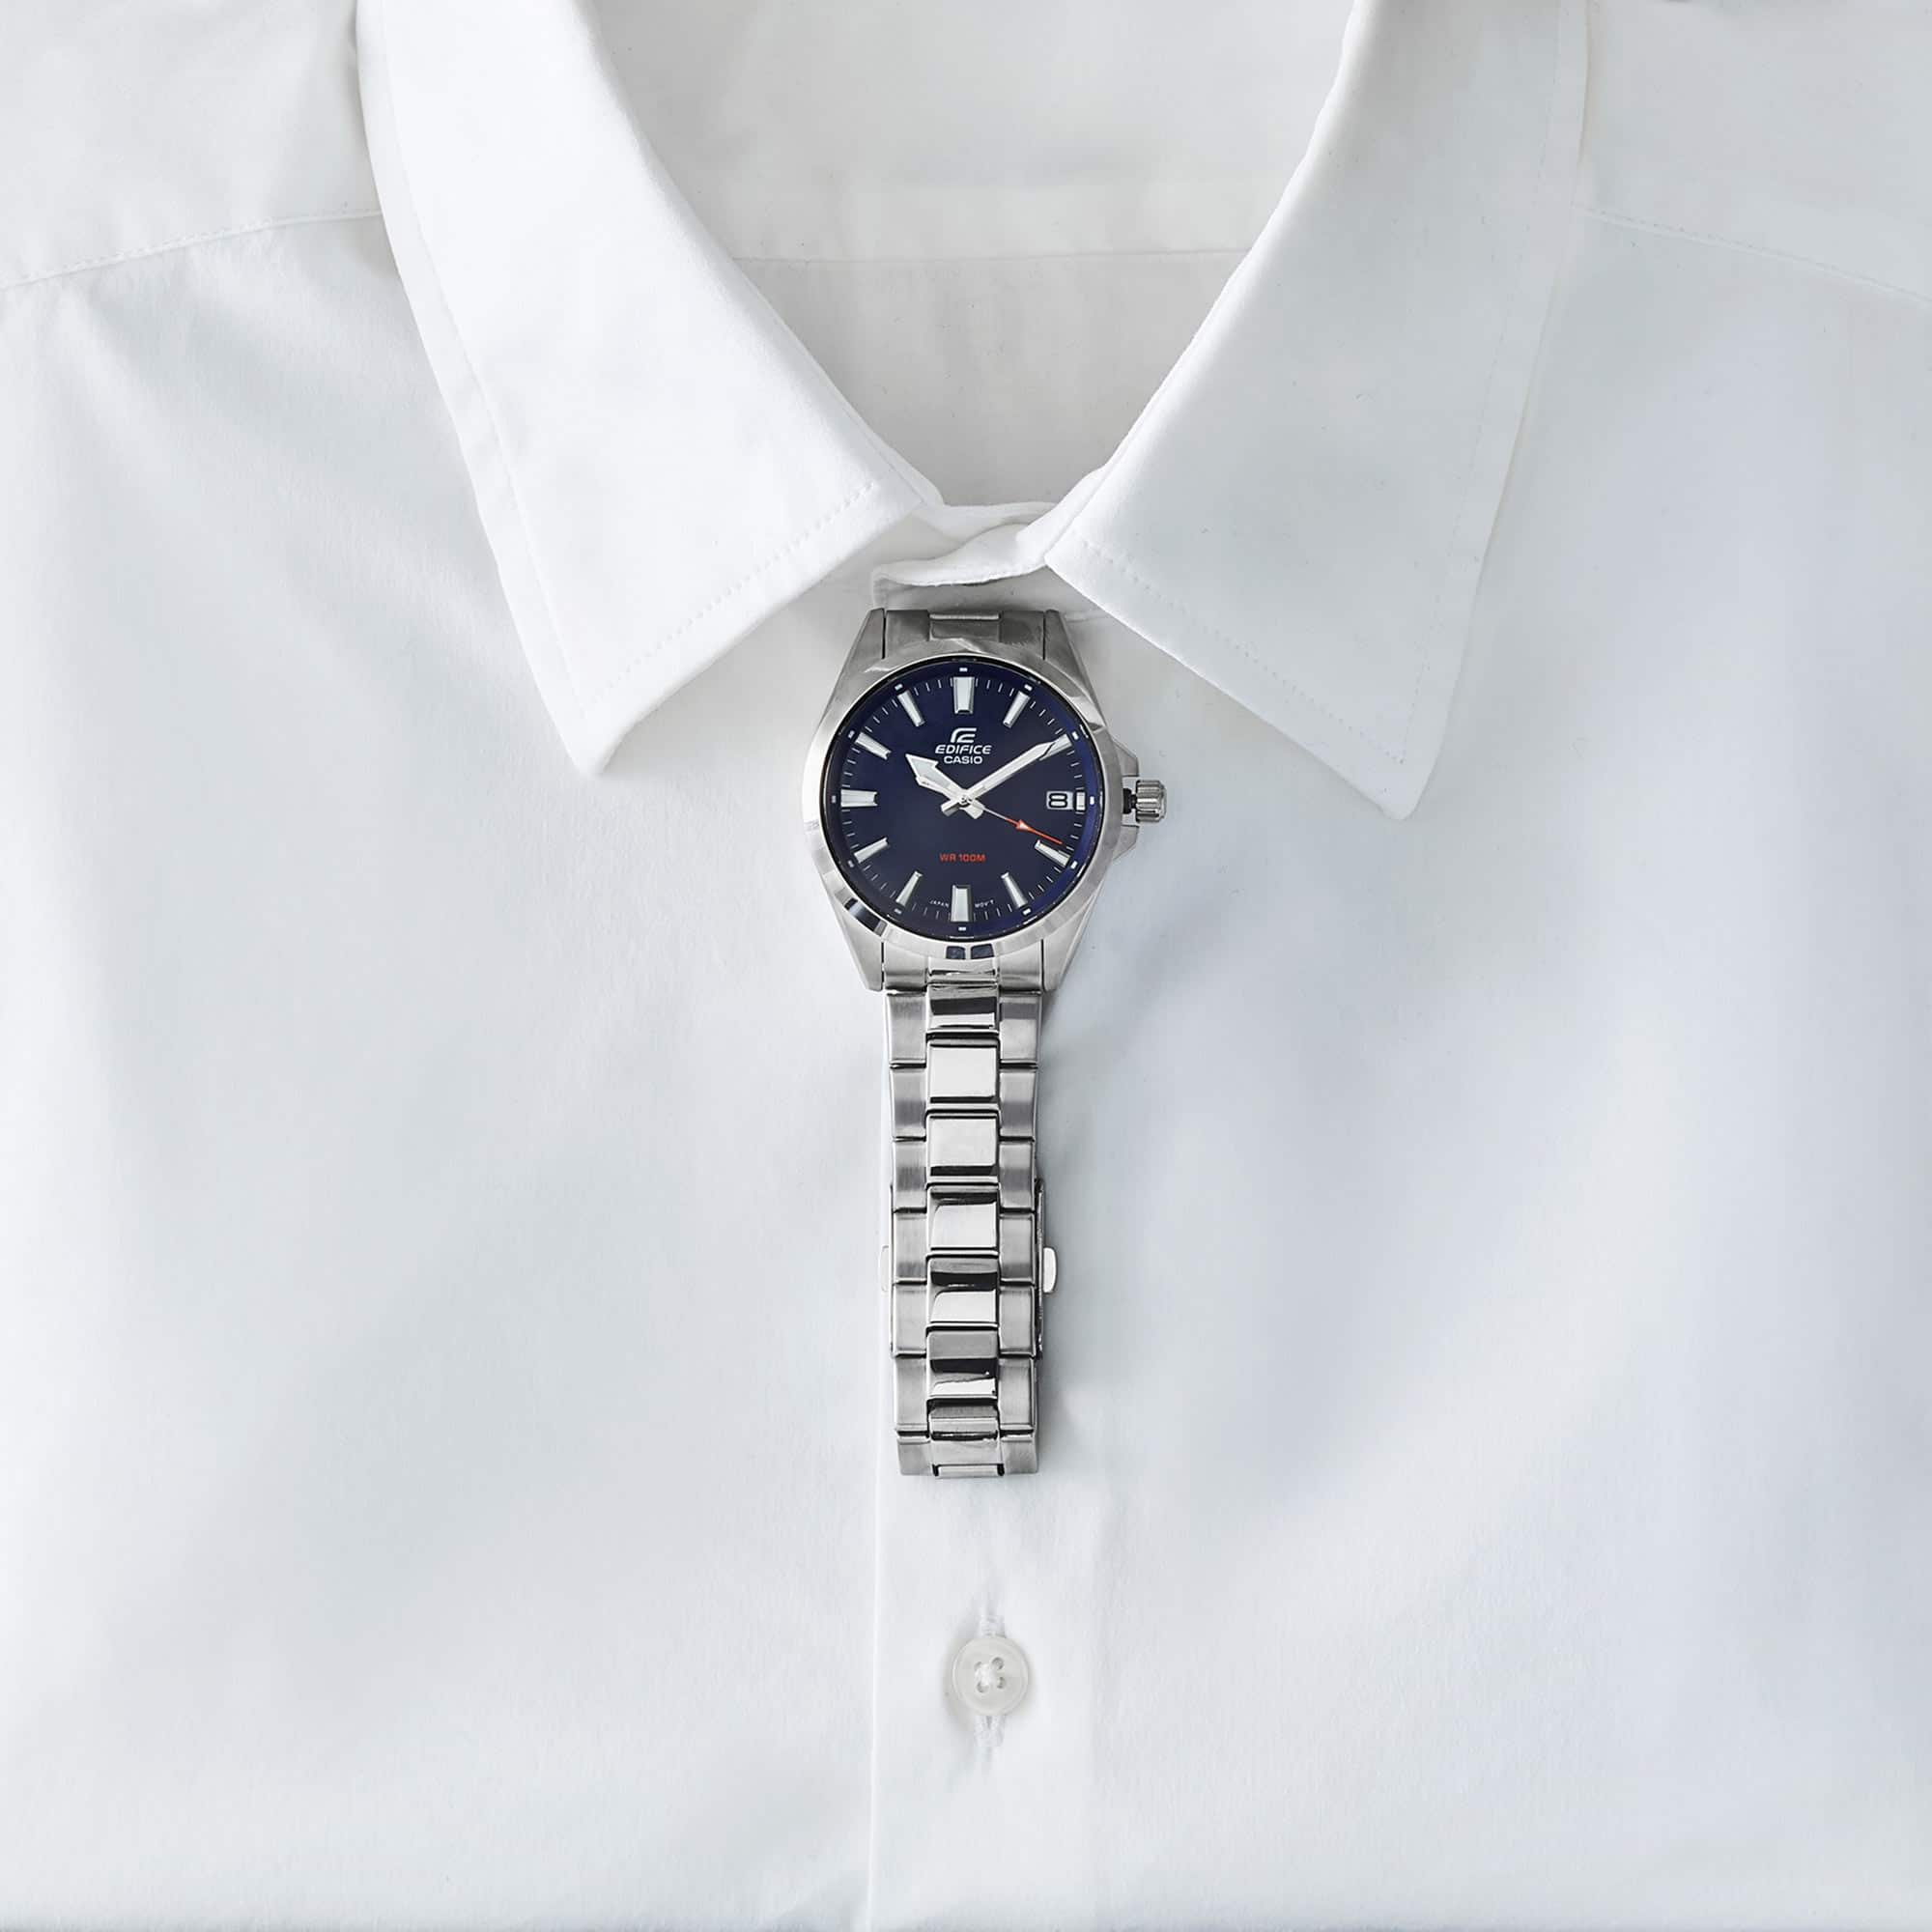 Man White Shirt Still Life Shot for Casio by Fotografando